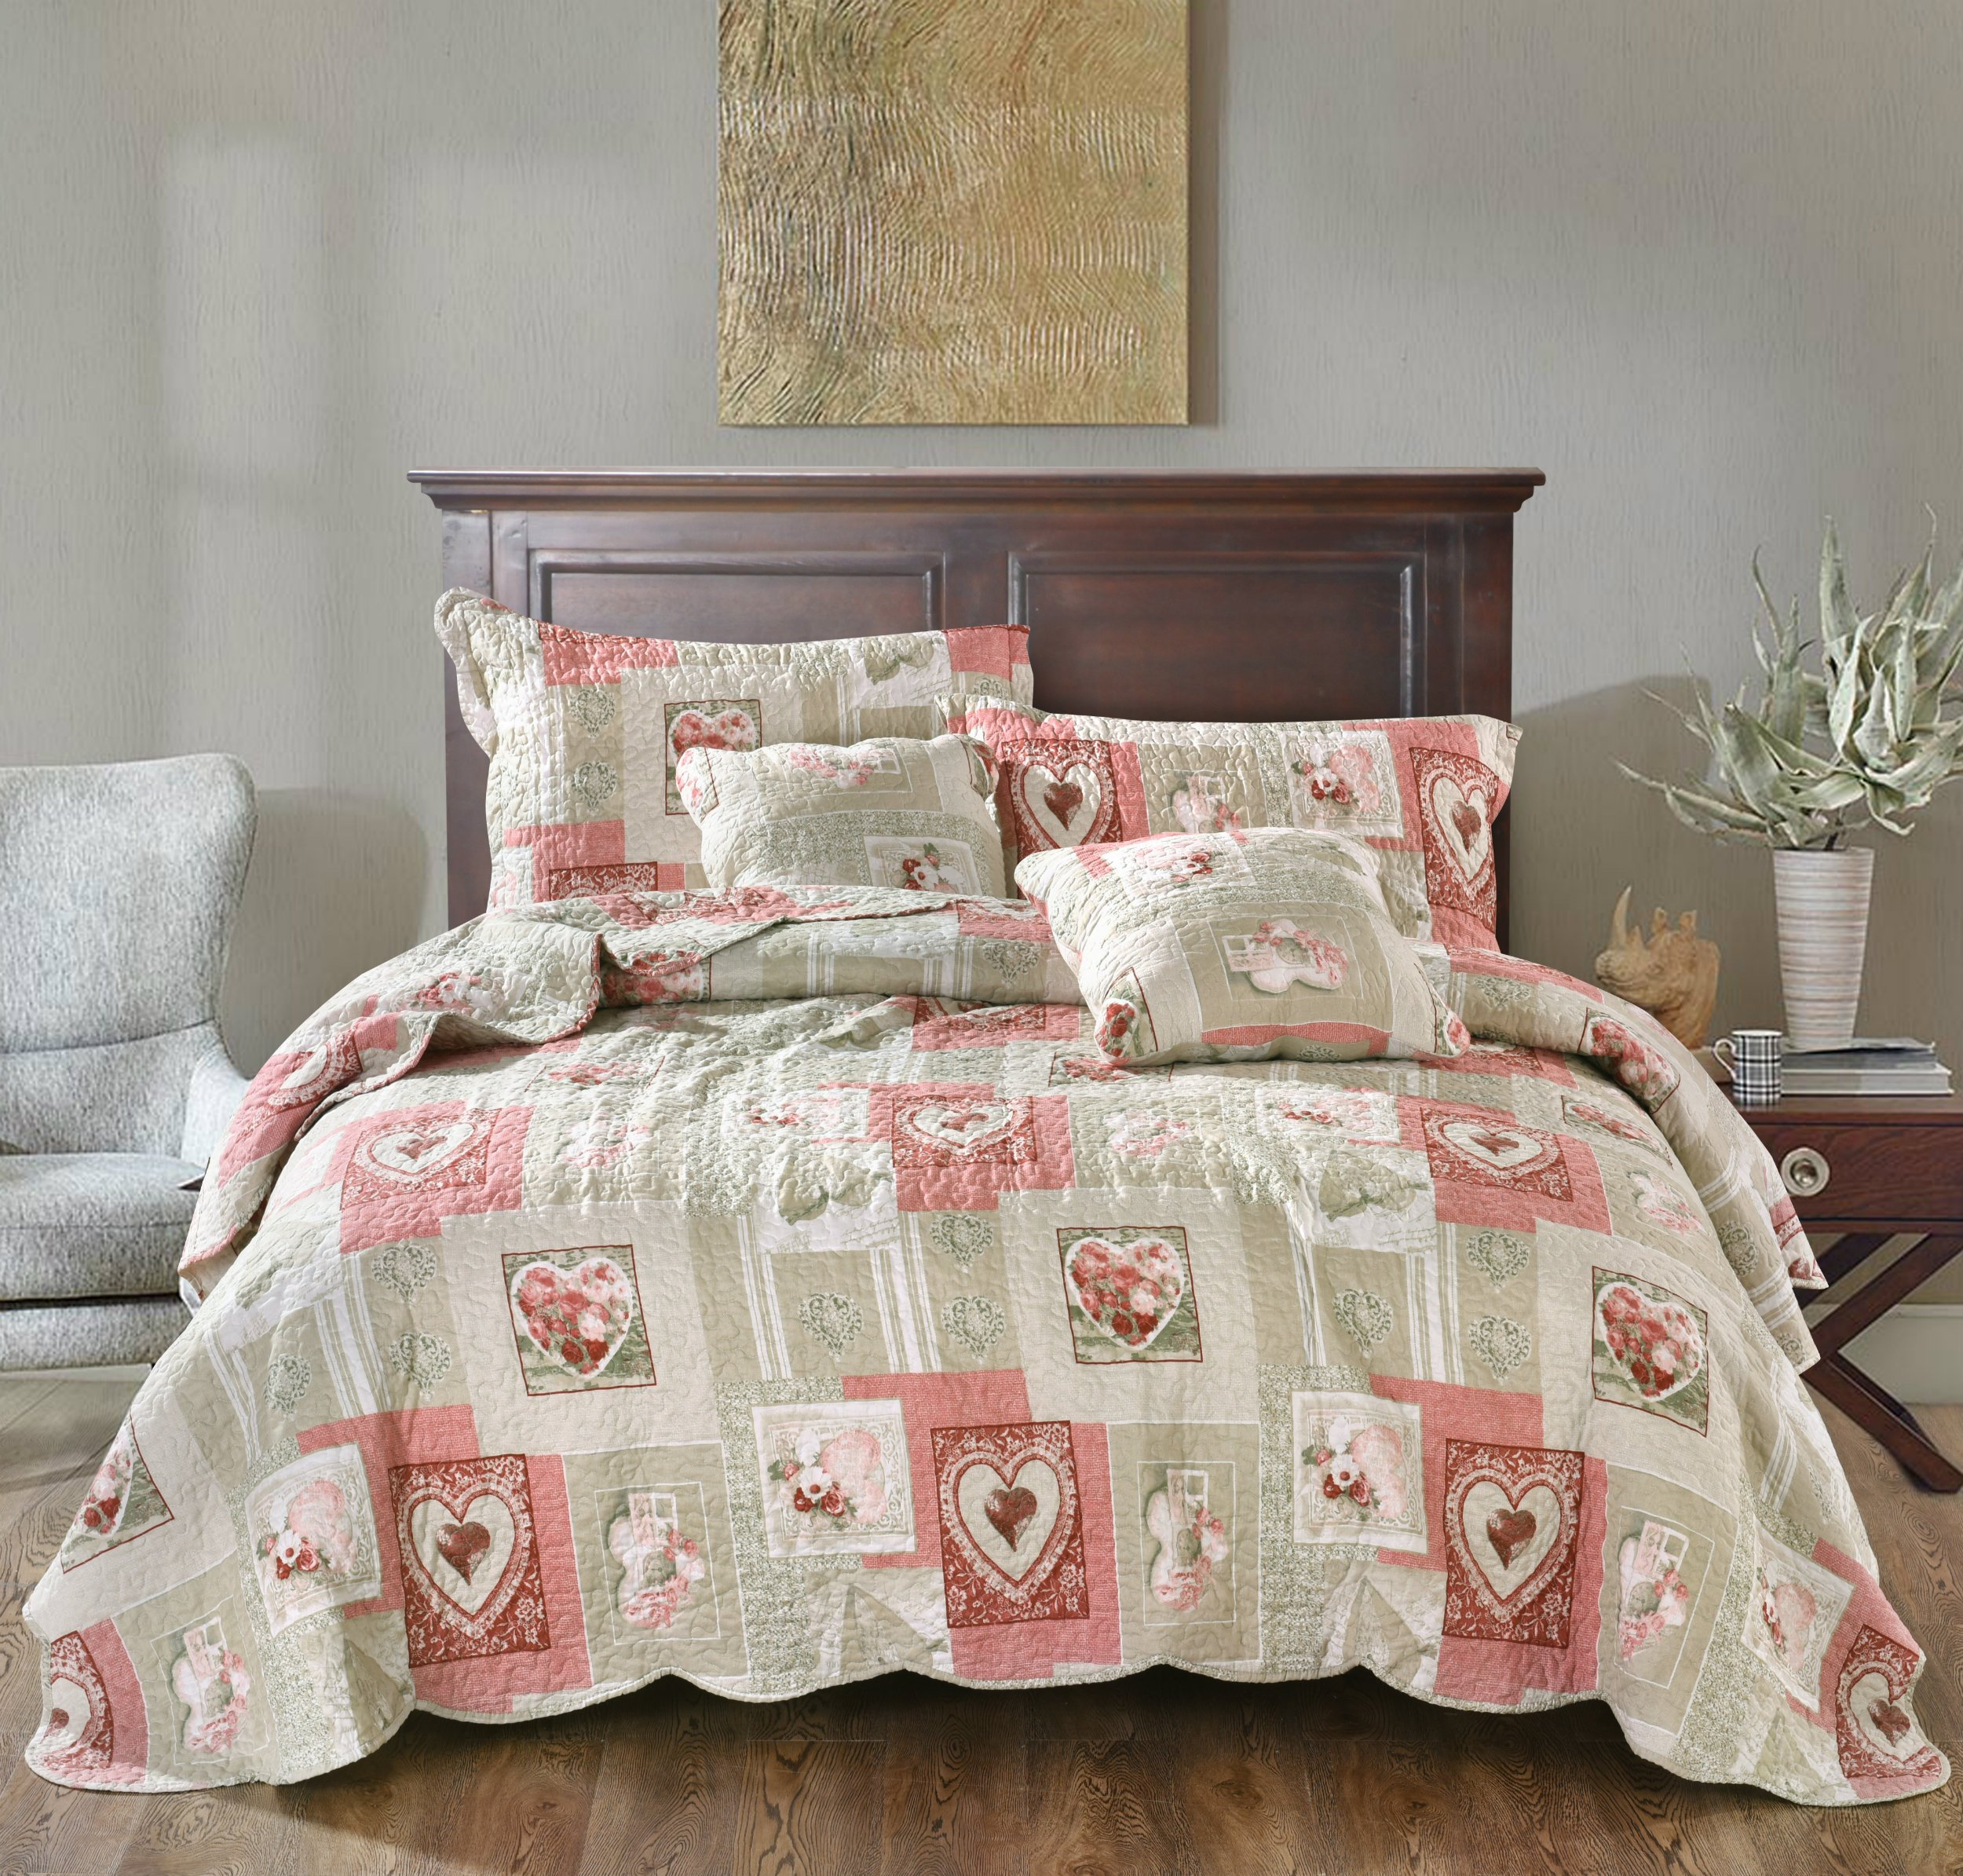 Tache Home Fashion Dainty Sweetheart Cottage Patchwork Quilted Coverlet Bedspread Set - Bright Vibrant Scalloped Multi Colorful White Red Pink Floral Print - Cal King - 3-Pieces